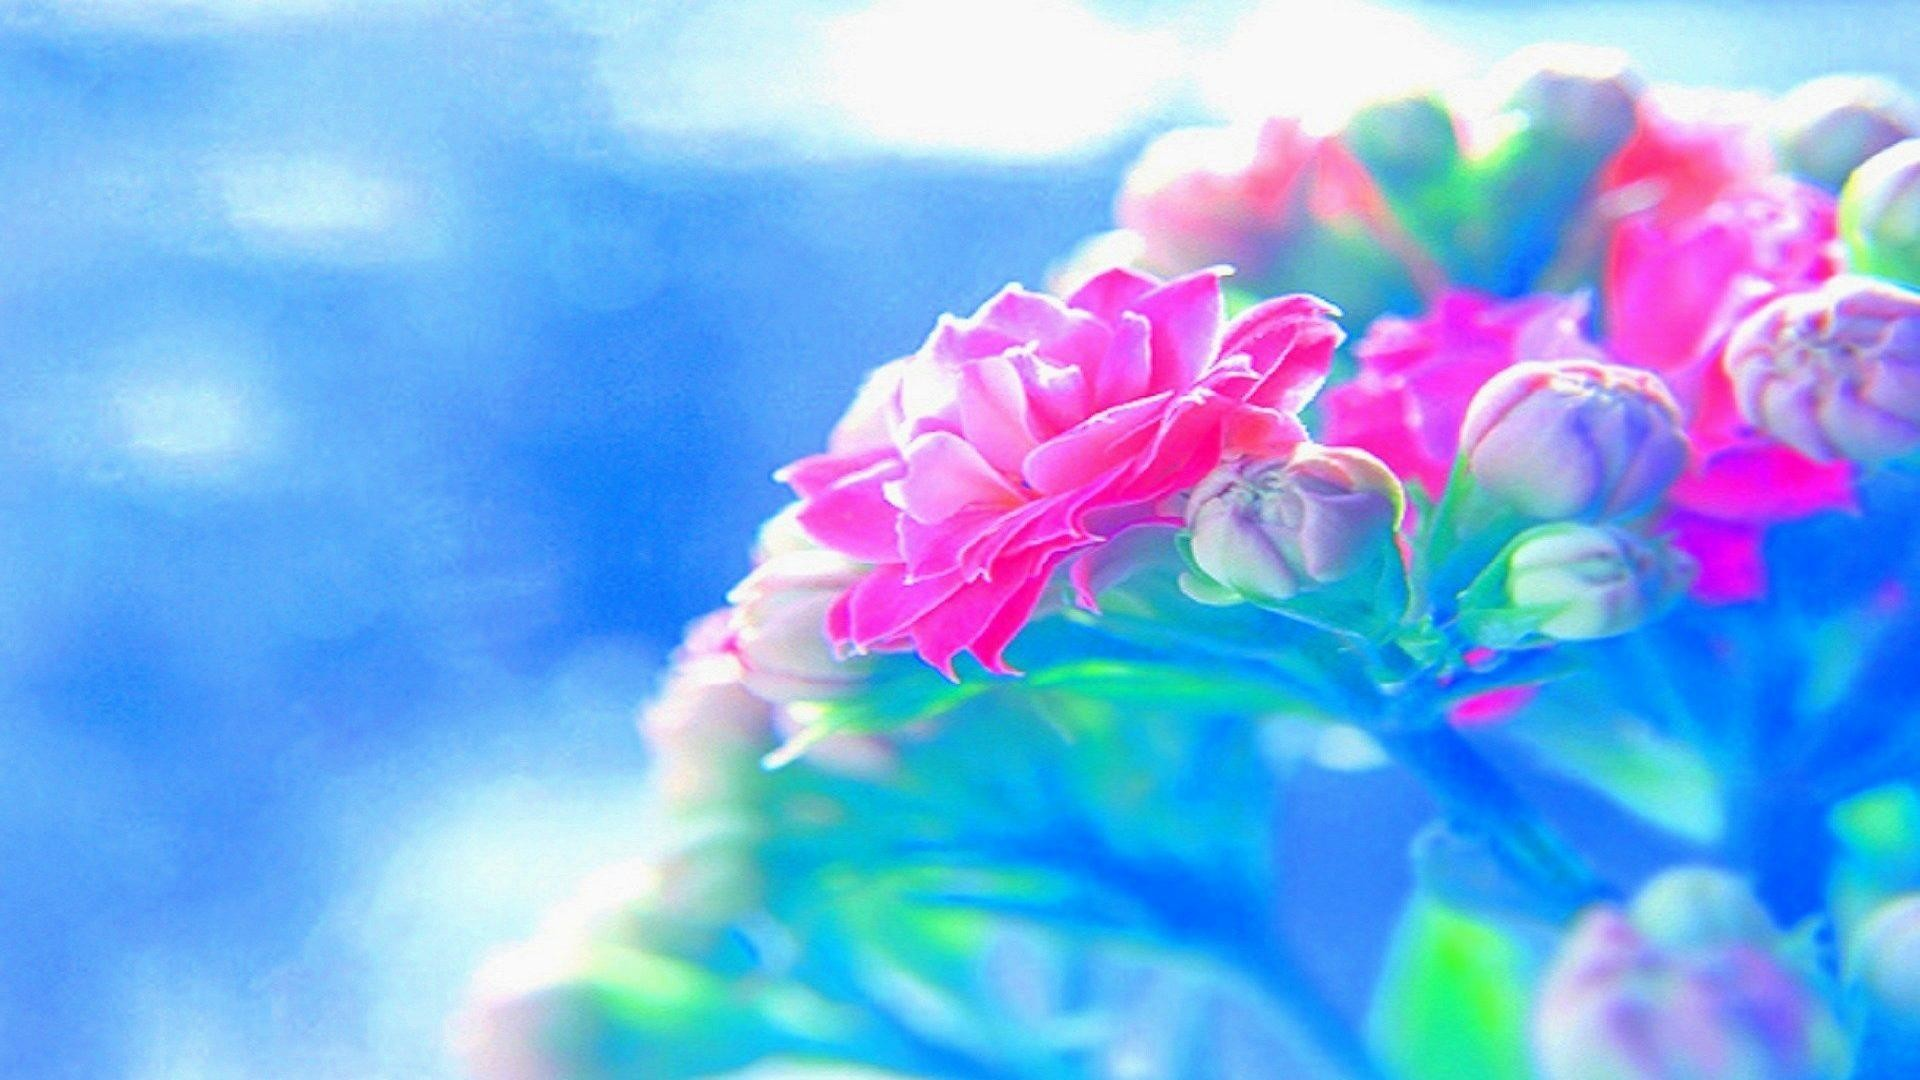 bright flower wallpaper (43+ images)